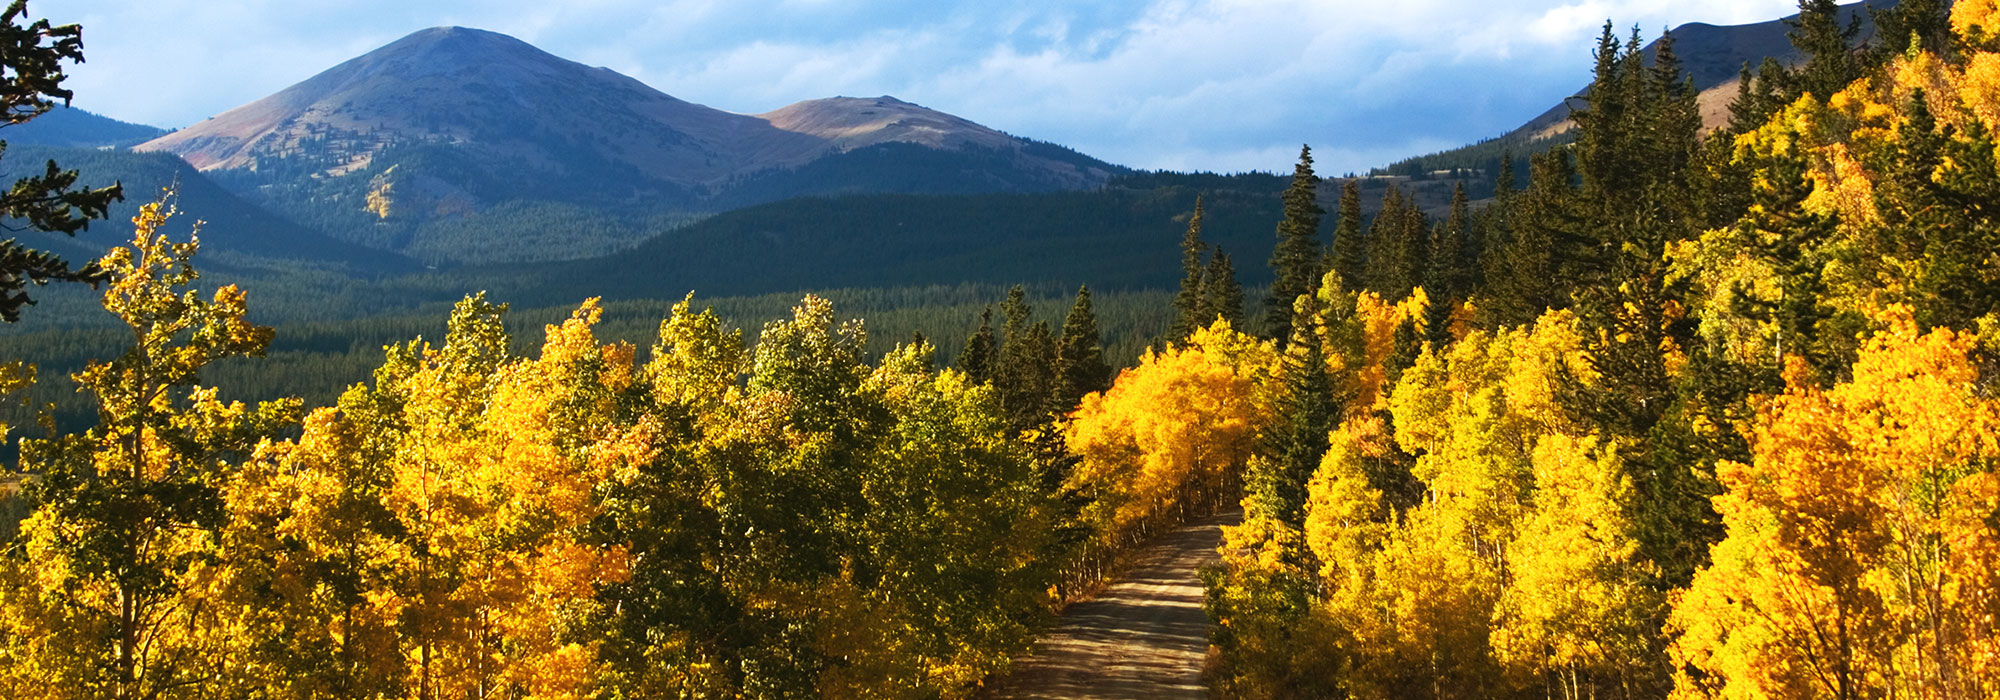 8 Fall Hikes in Breckenridge, CO | Colorado Fall | Paragon Lodging